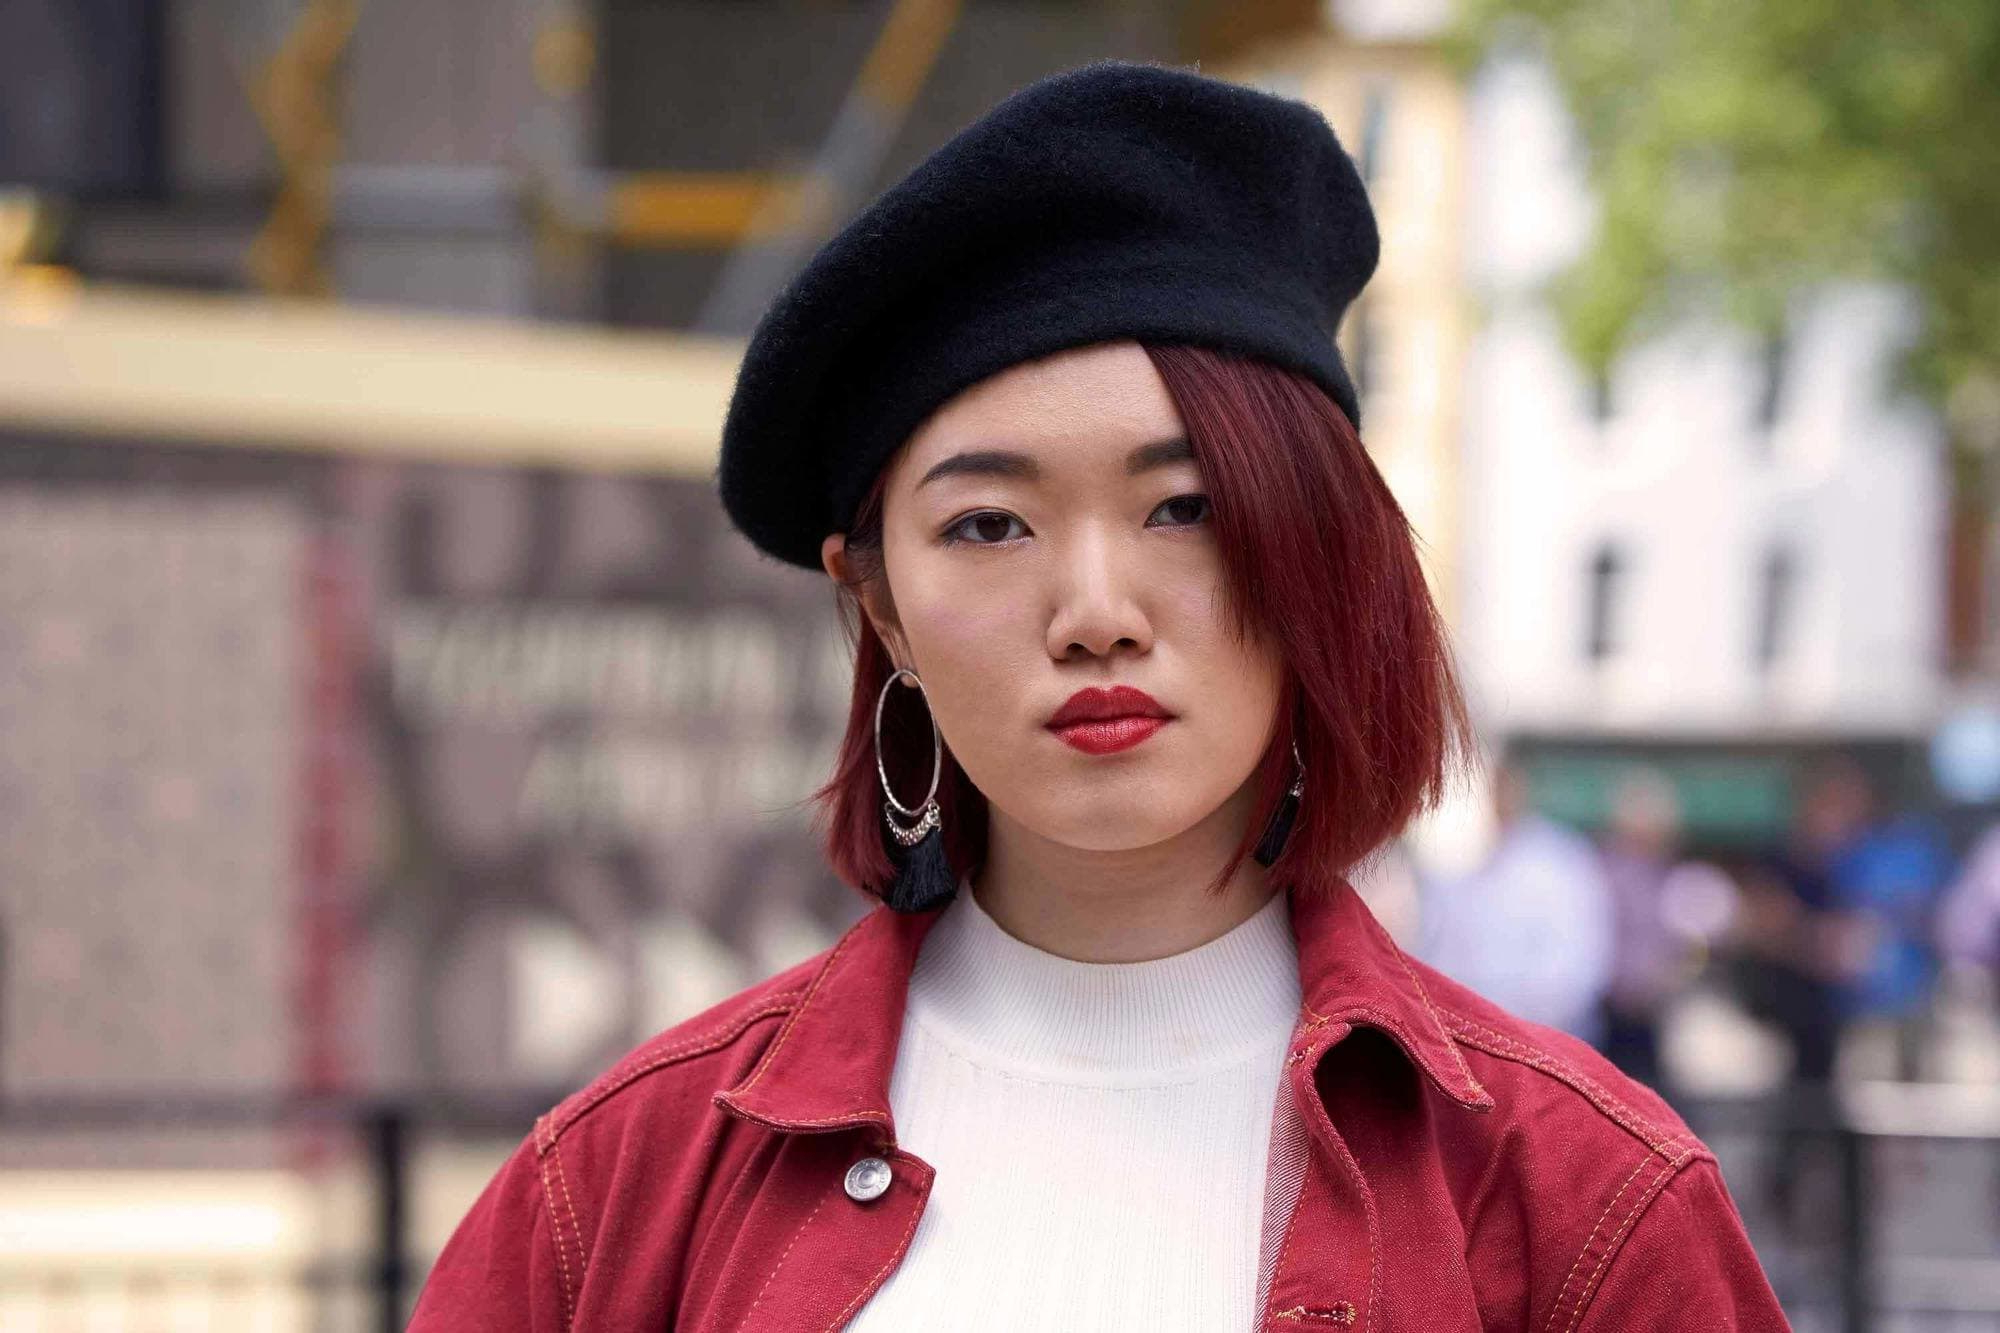 The Trendiest Korean Short Hairstyles To Get In On Within Burgundy Short Hairstyles (View 25 of 25)